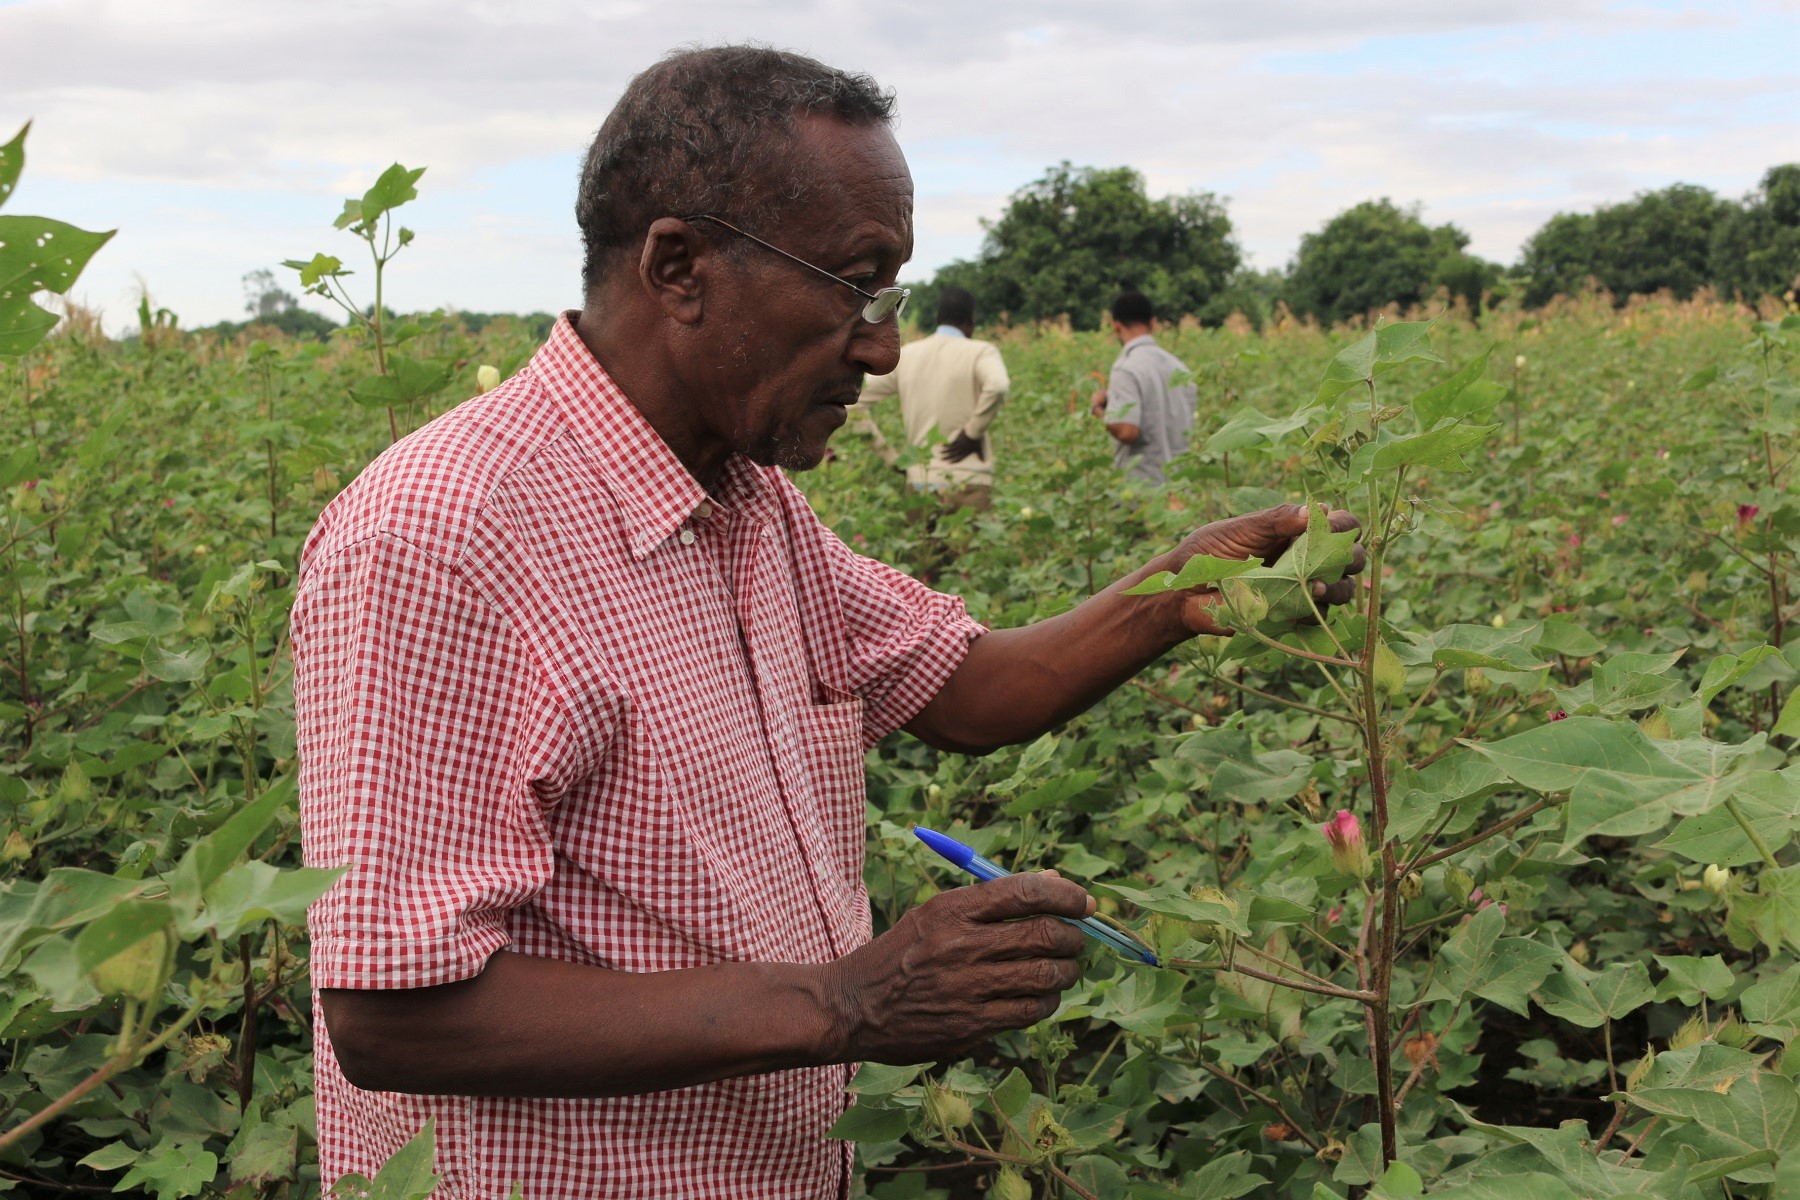 Monitoring sustainably-grown cotton crops in Ethiopia